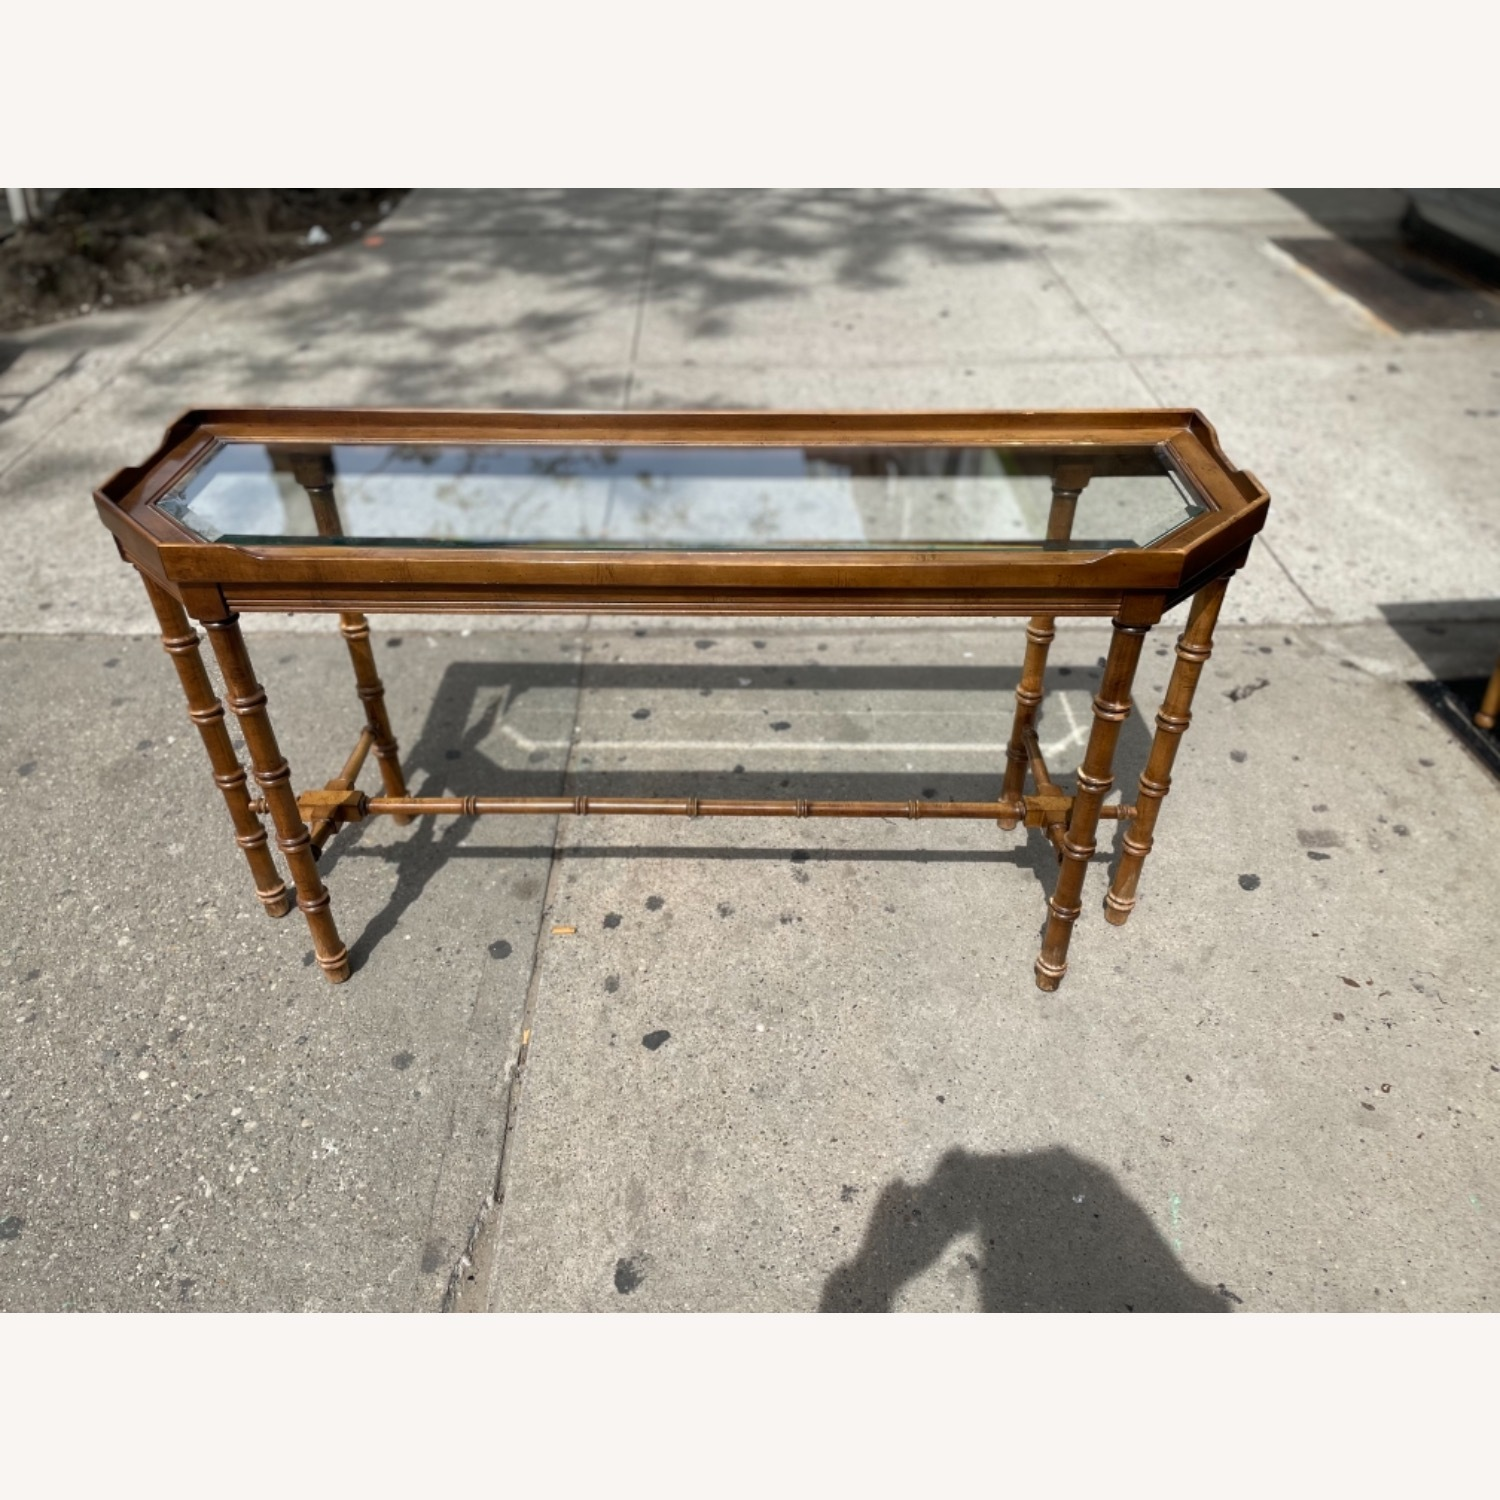 Lane 1970s Console Table w/ Beveled Glass Top - image-5